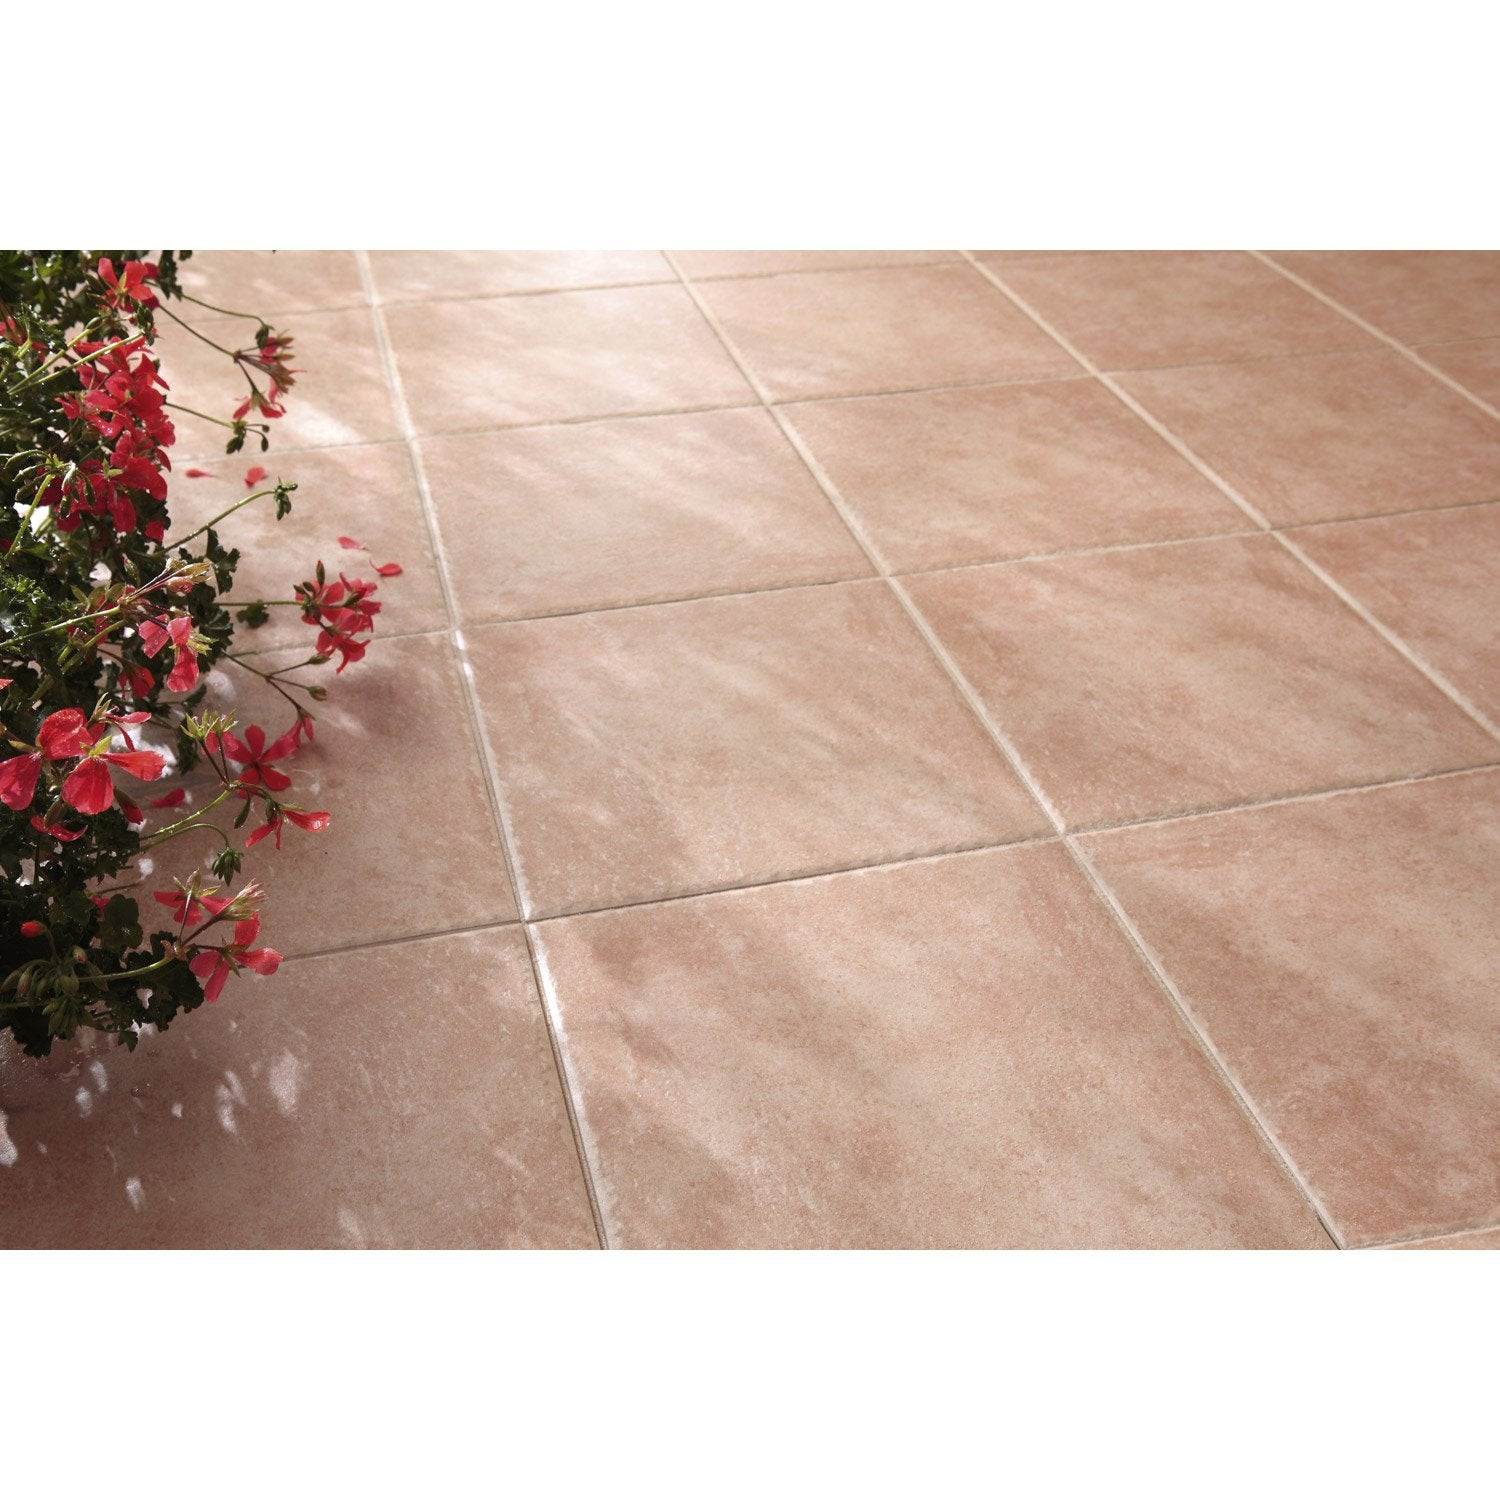 Carrelage sol rose effet pierre michigan x cm for Carrelage 30x30 beige